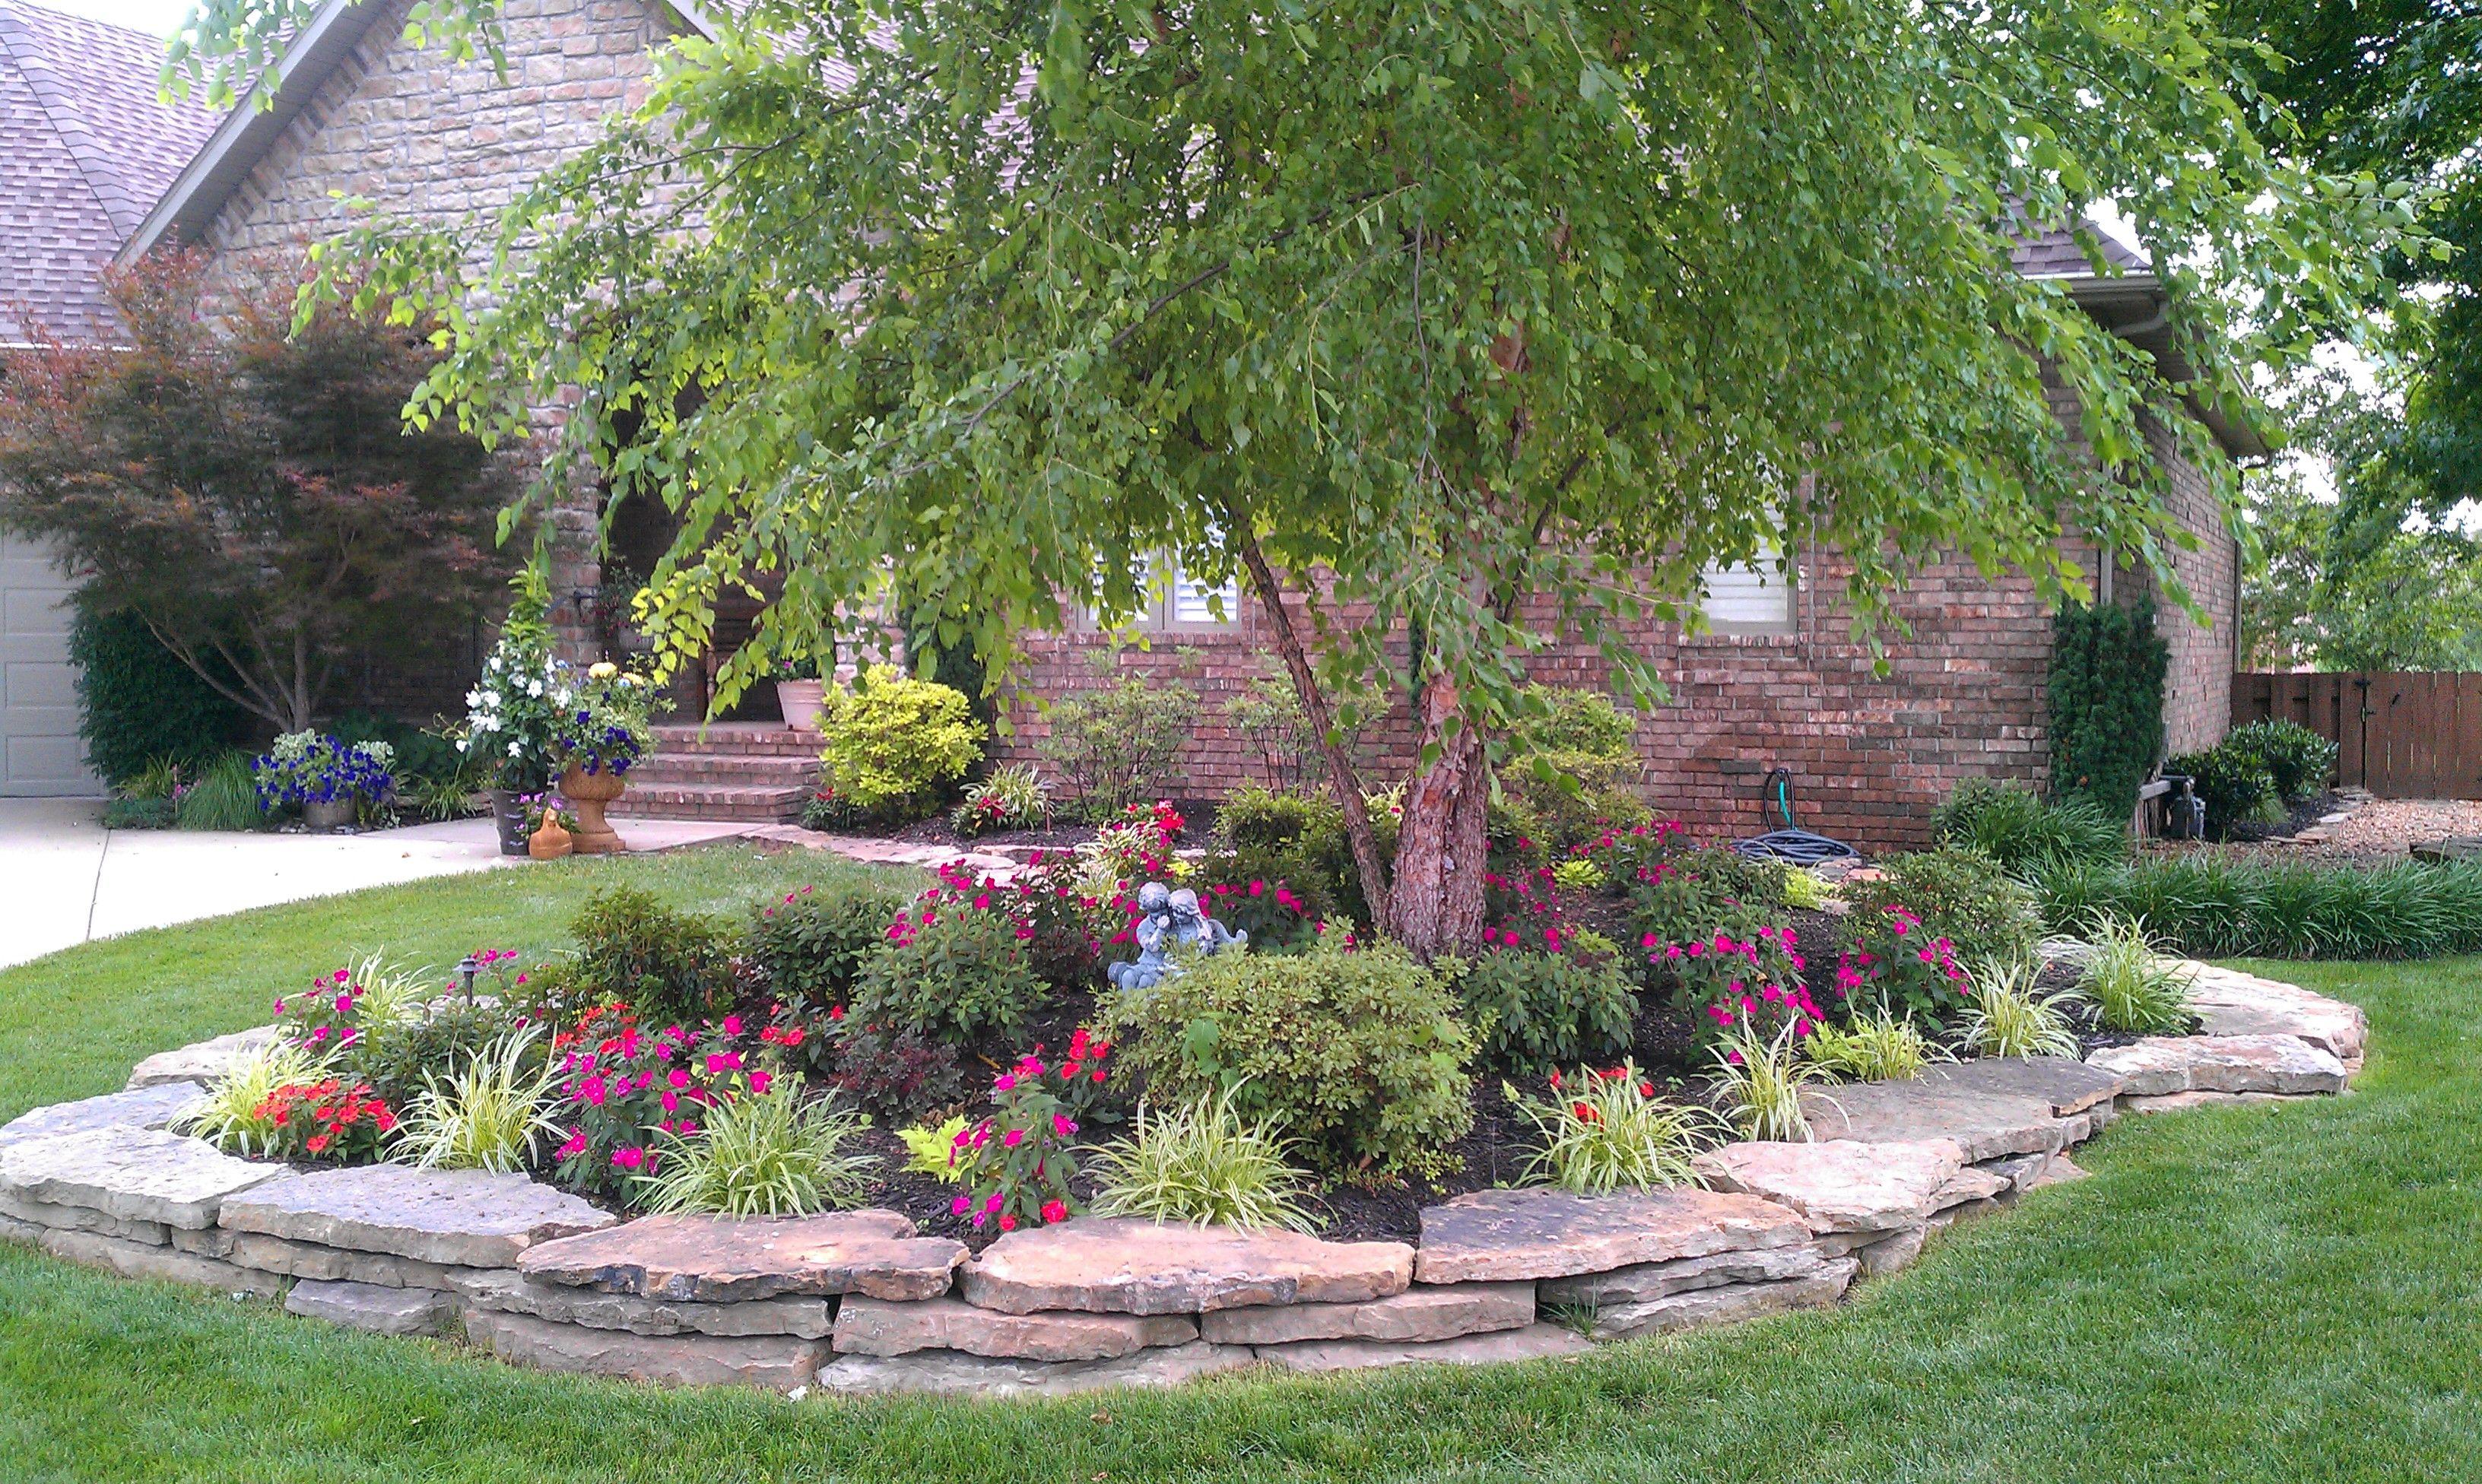 Diy landscape design for beginners landscape designs for Garden design landscaping ideas